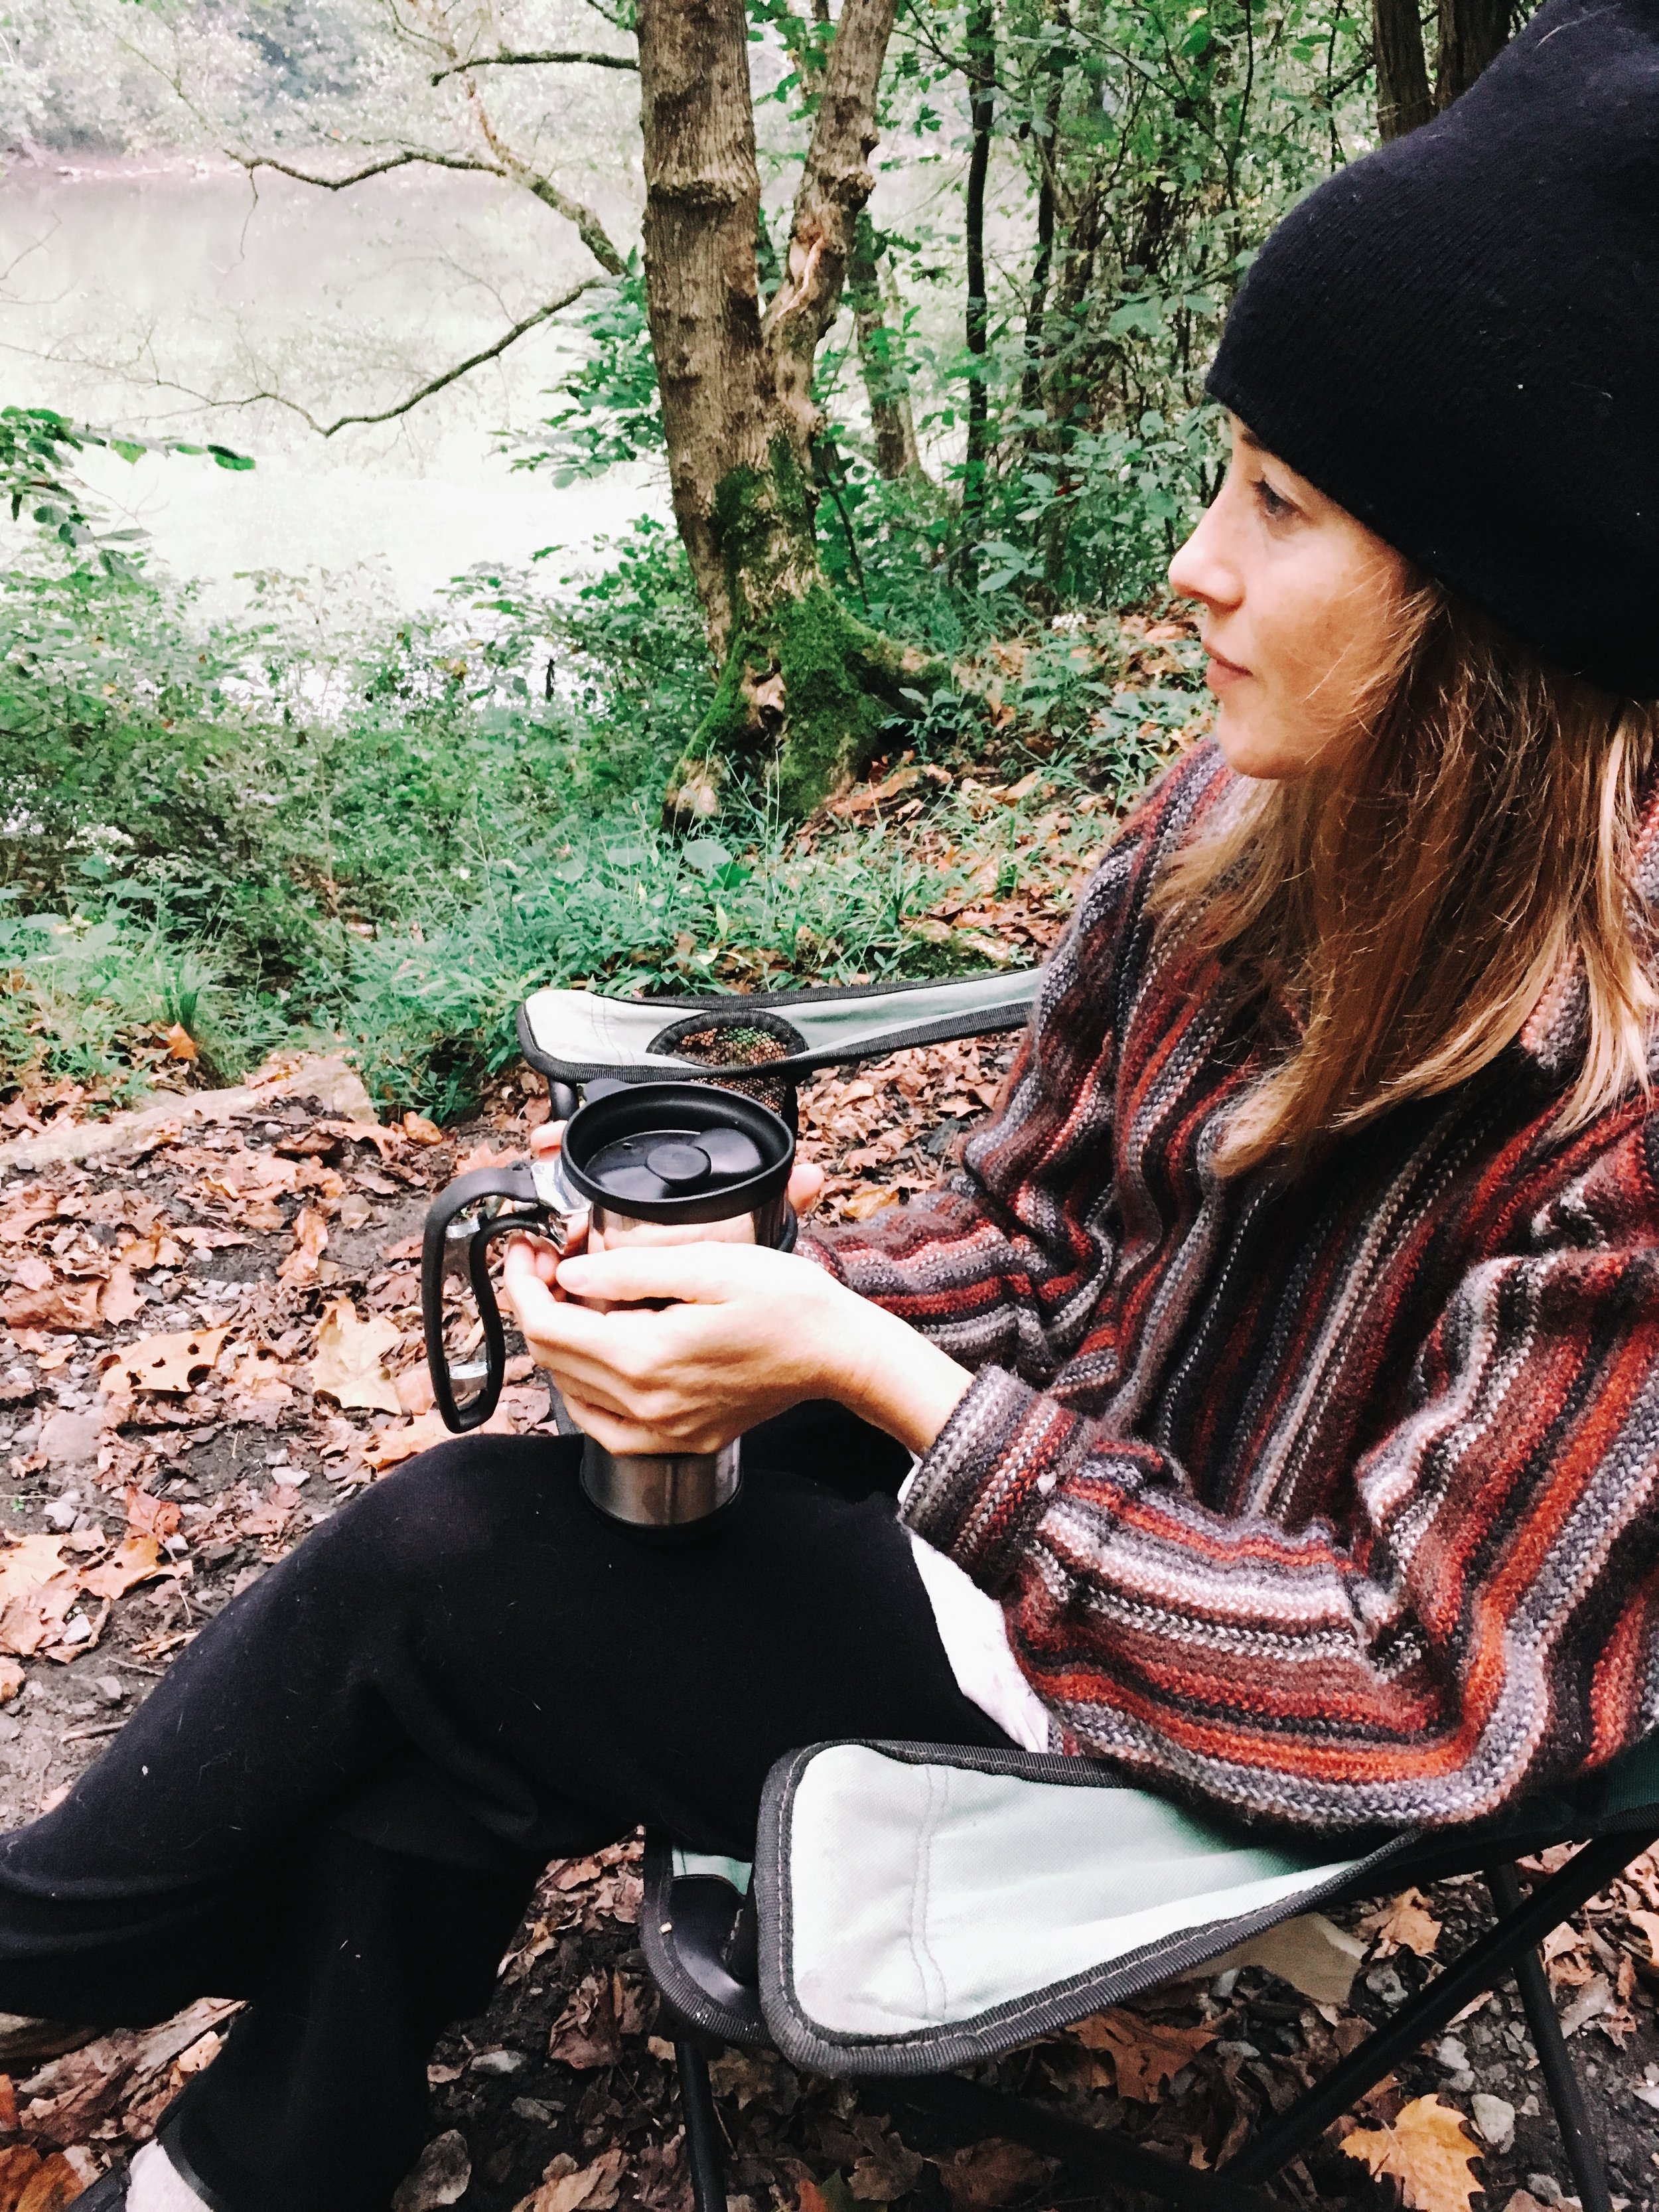 To-go French press is the perfect way to start your camp mornings.